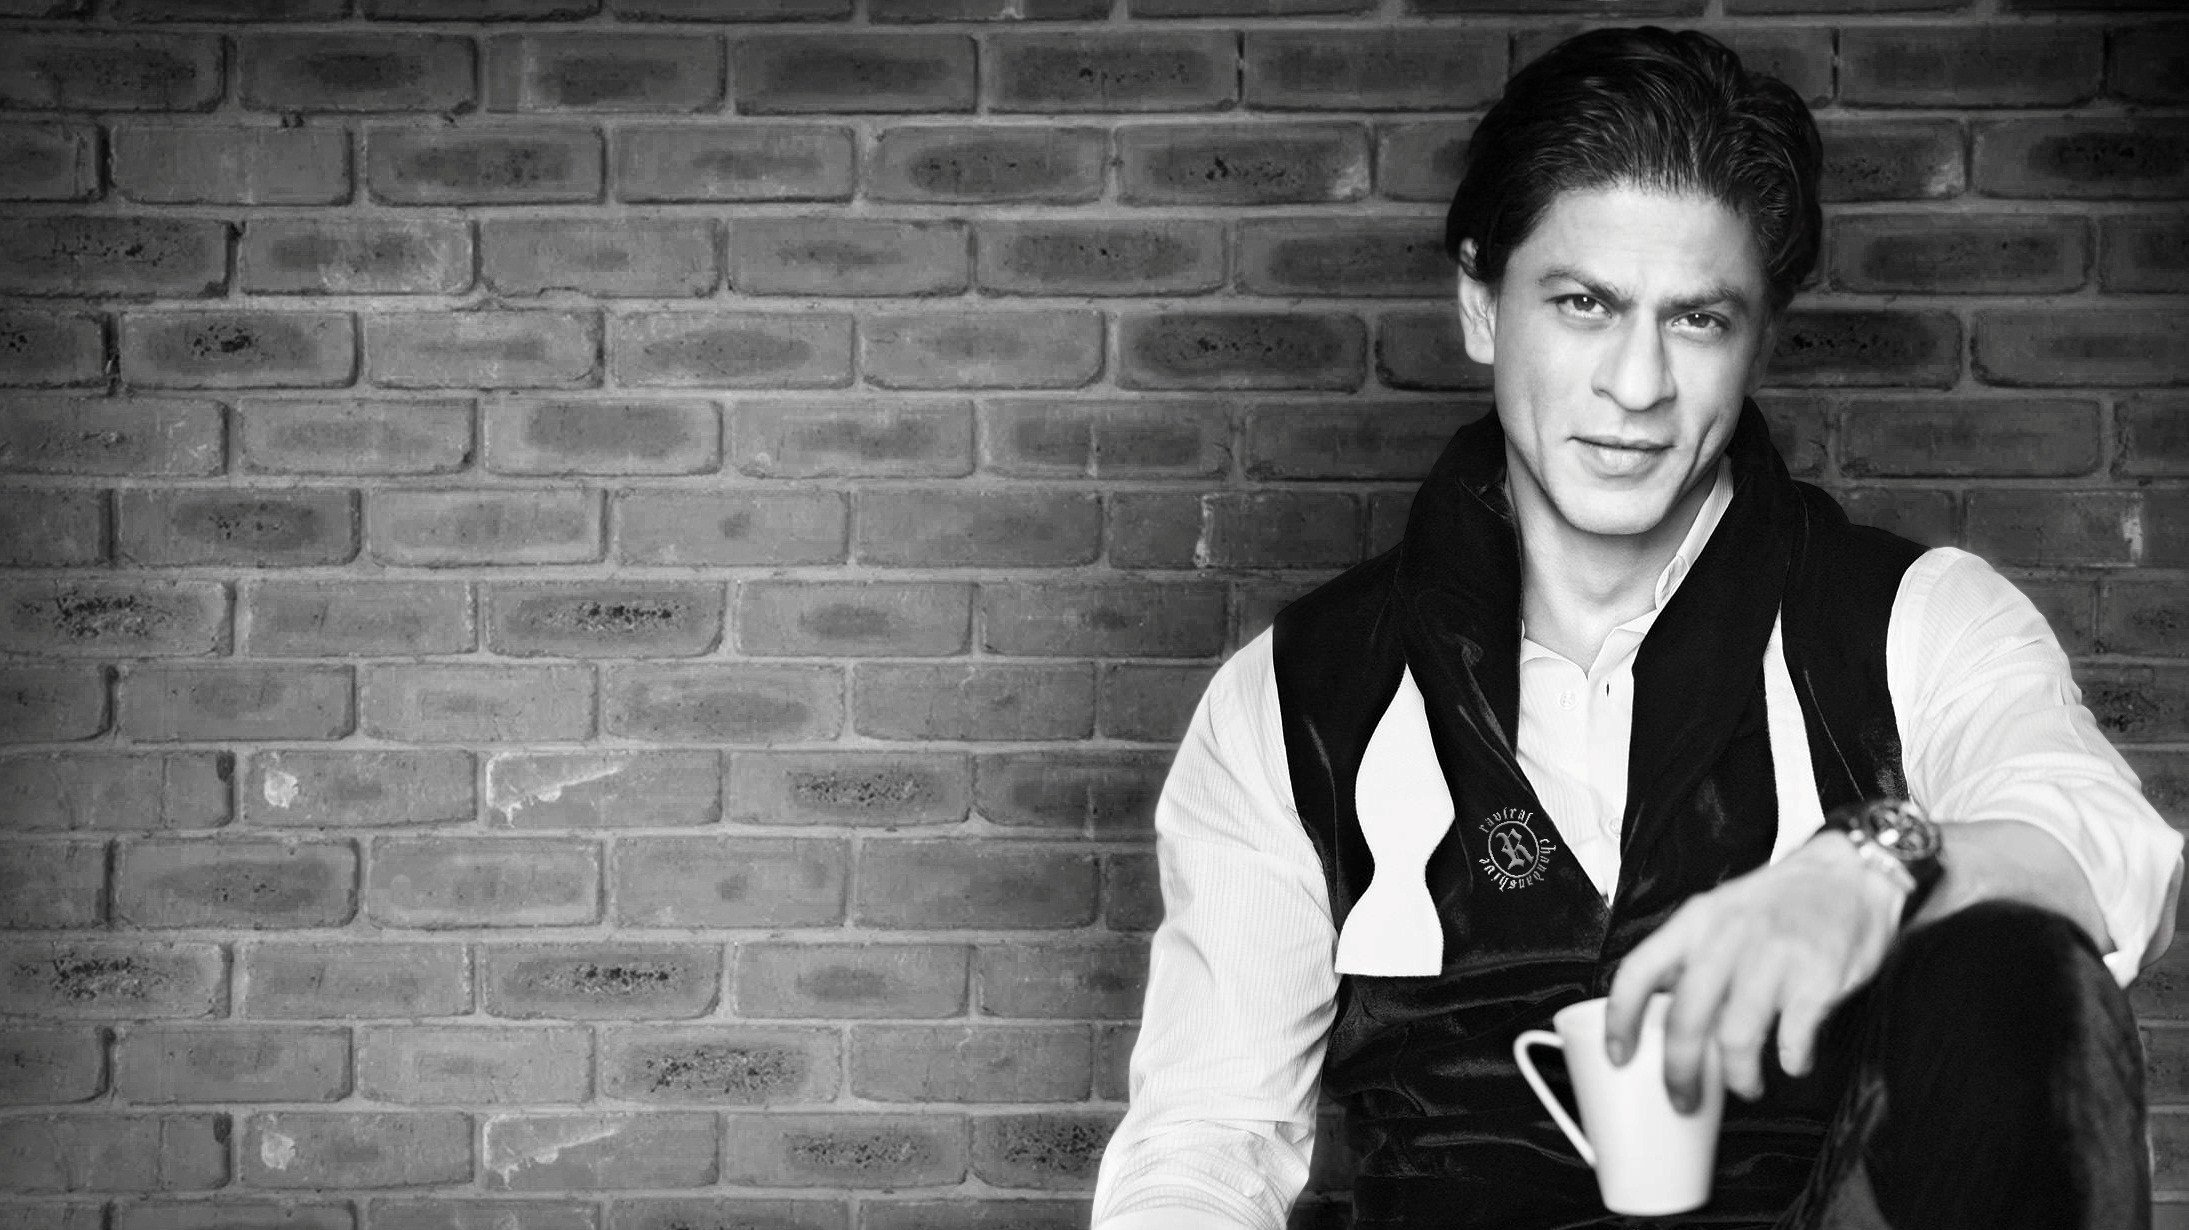 Shah Rukh Khan Wallpapers: Shah Rukh Khan Wallpapers High Resolution And Quality Download